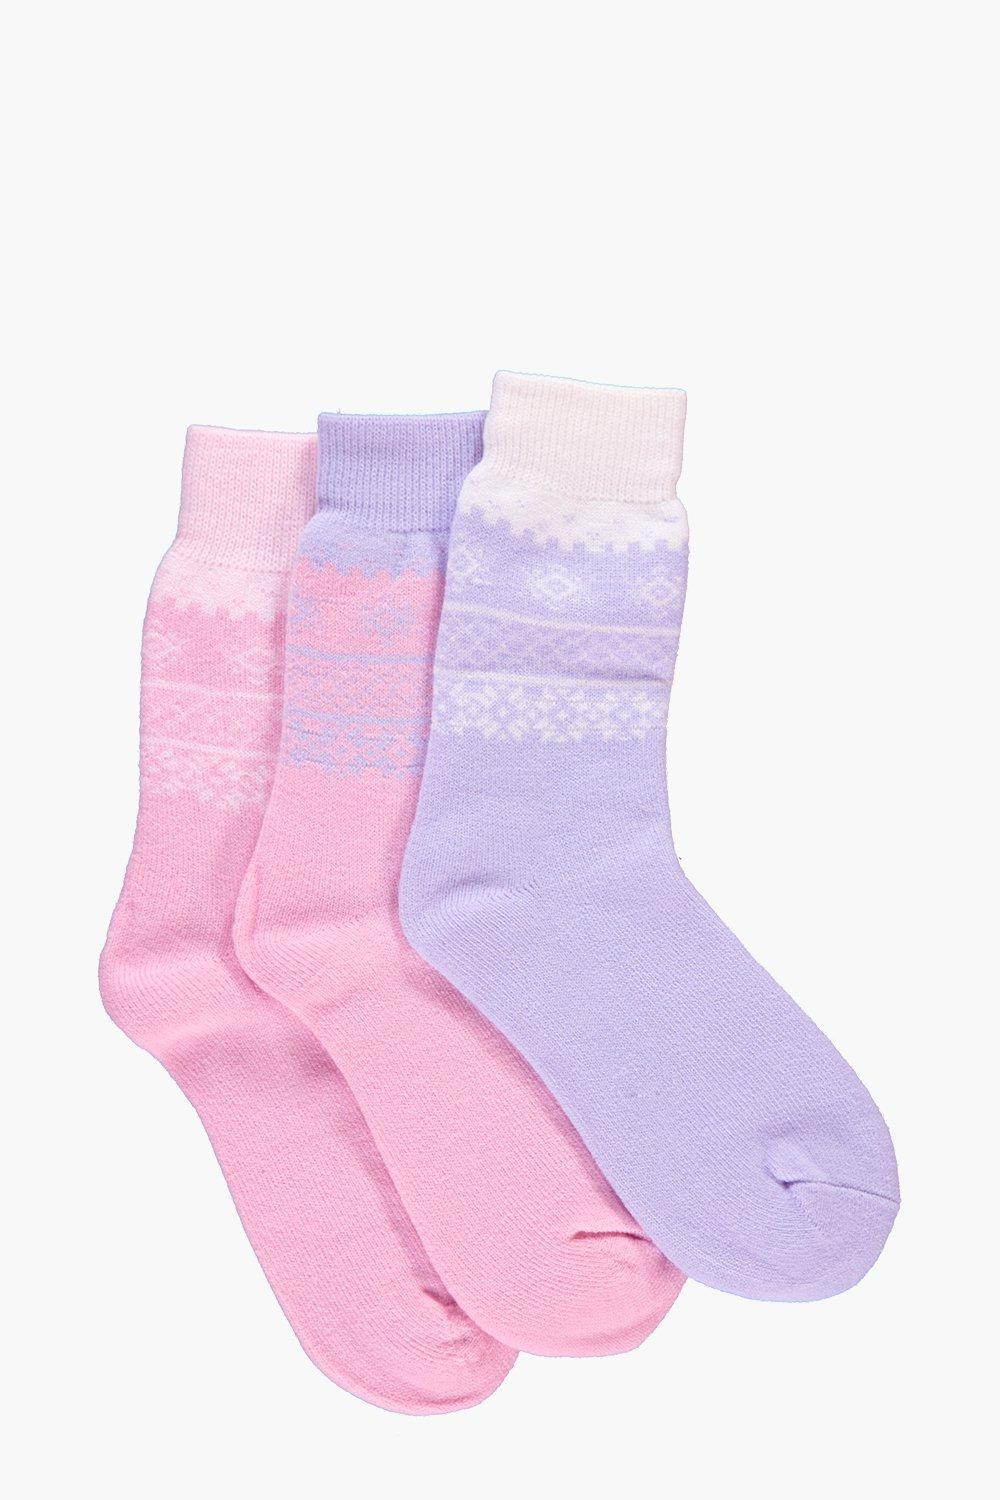 Ivy Fairisle Thermal Slipper Socks 3 Pack